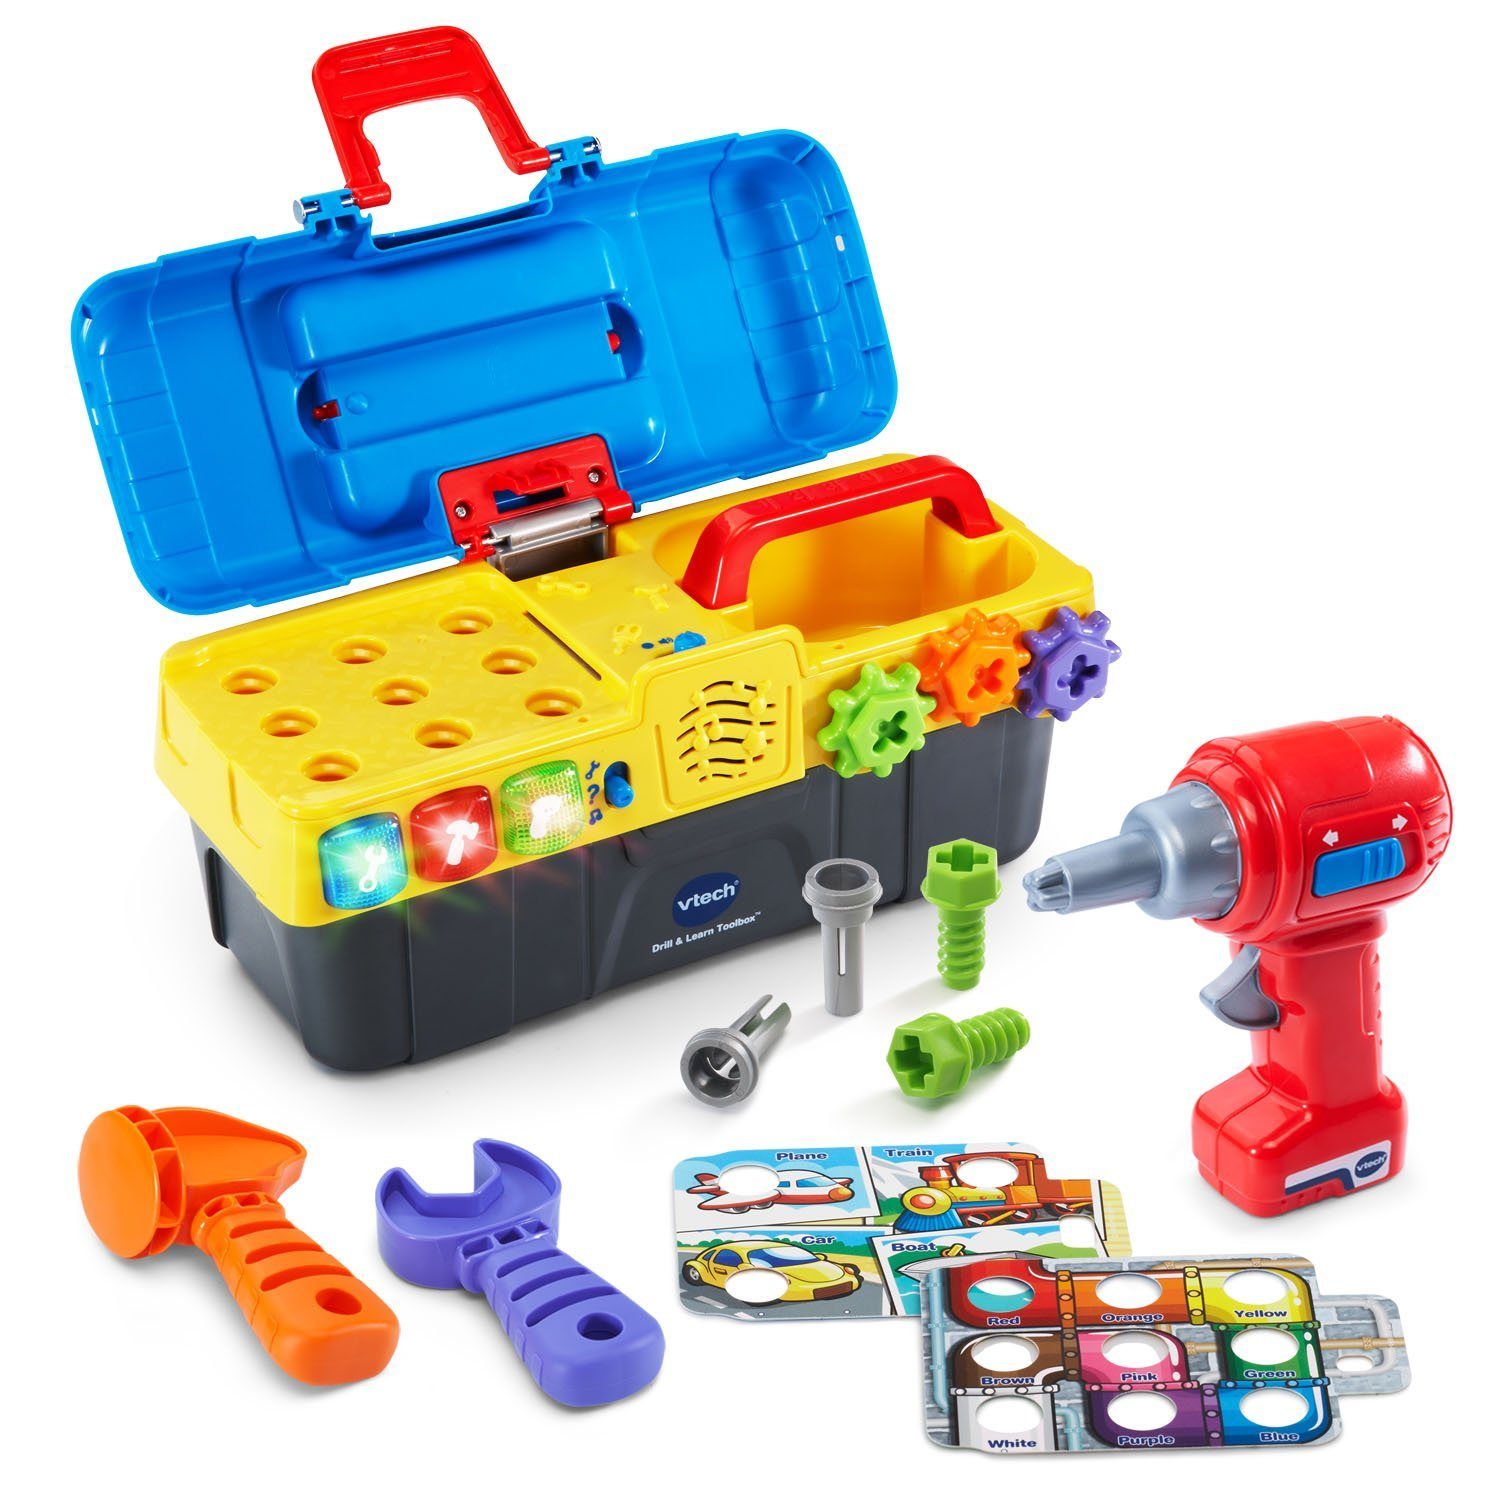 Amazon VTech 80 Drill & Learn Toolbox Toy Toys & Games